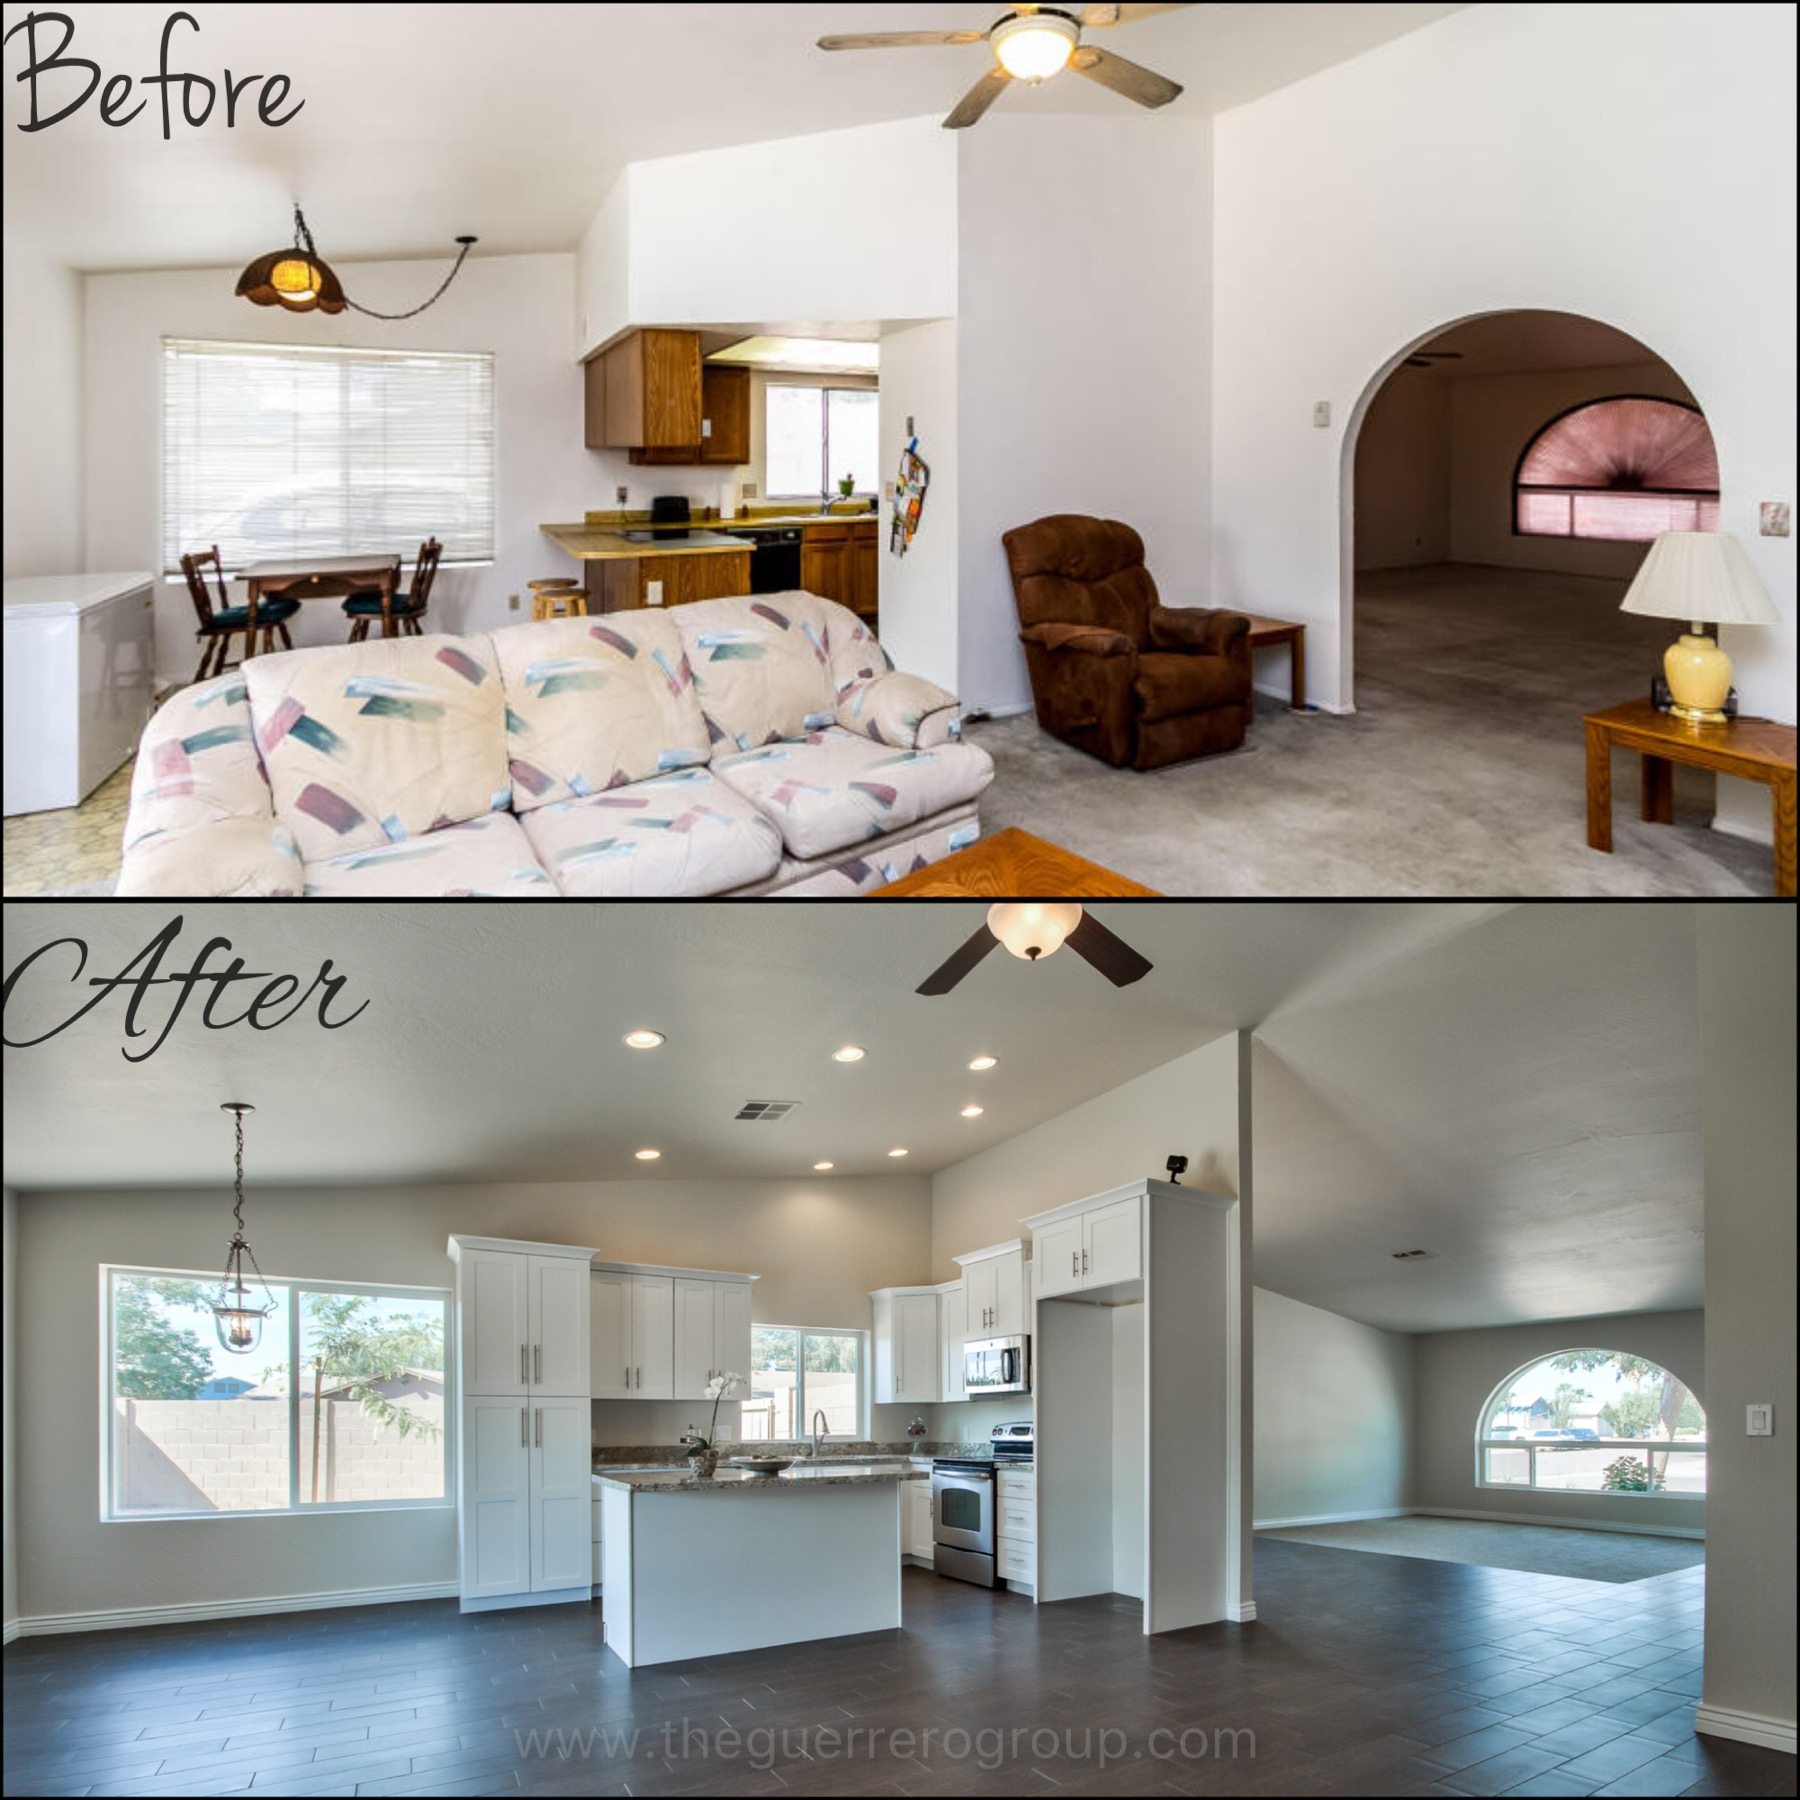 The Guerrero Group of Realty ONE Group specializing in home renovations in Chandler Arizona 85224 Tierra Dobson